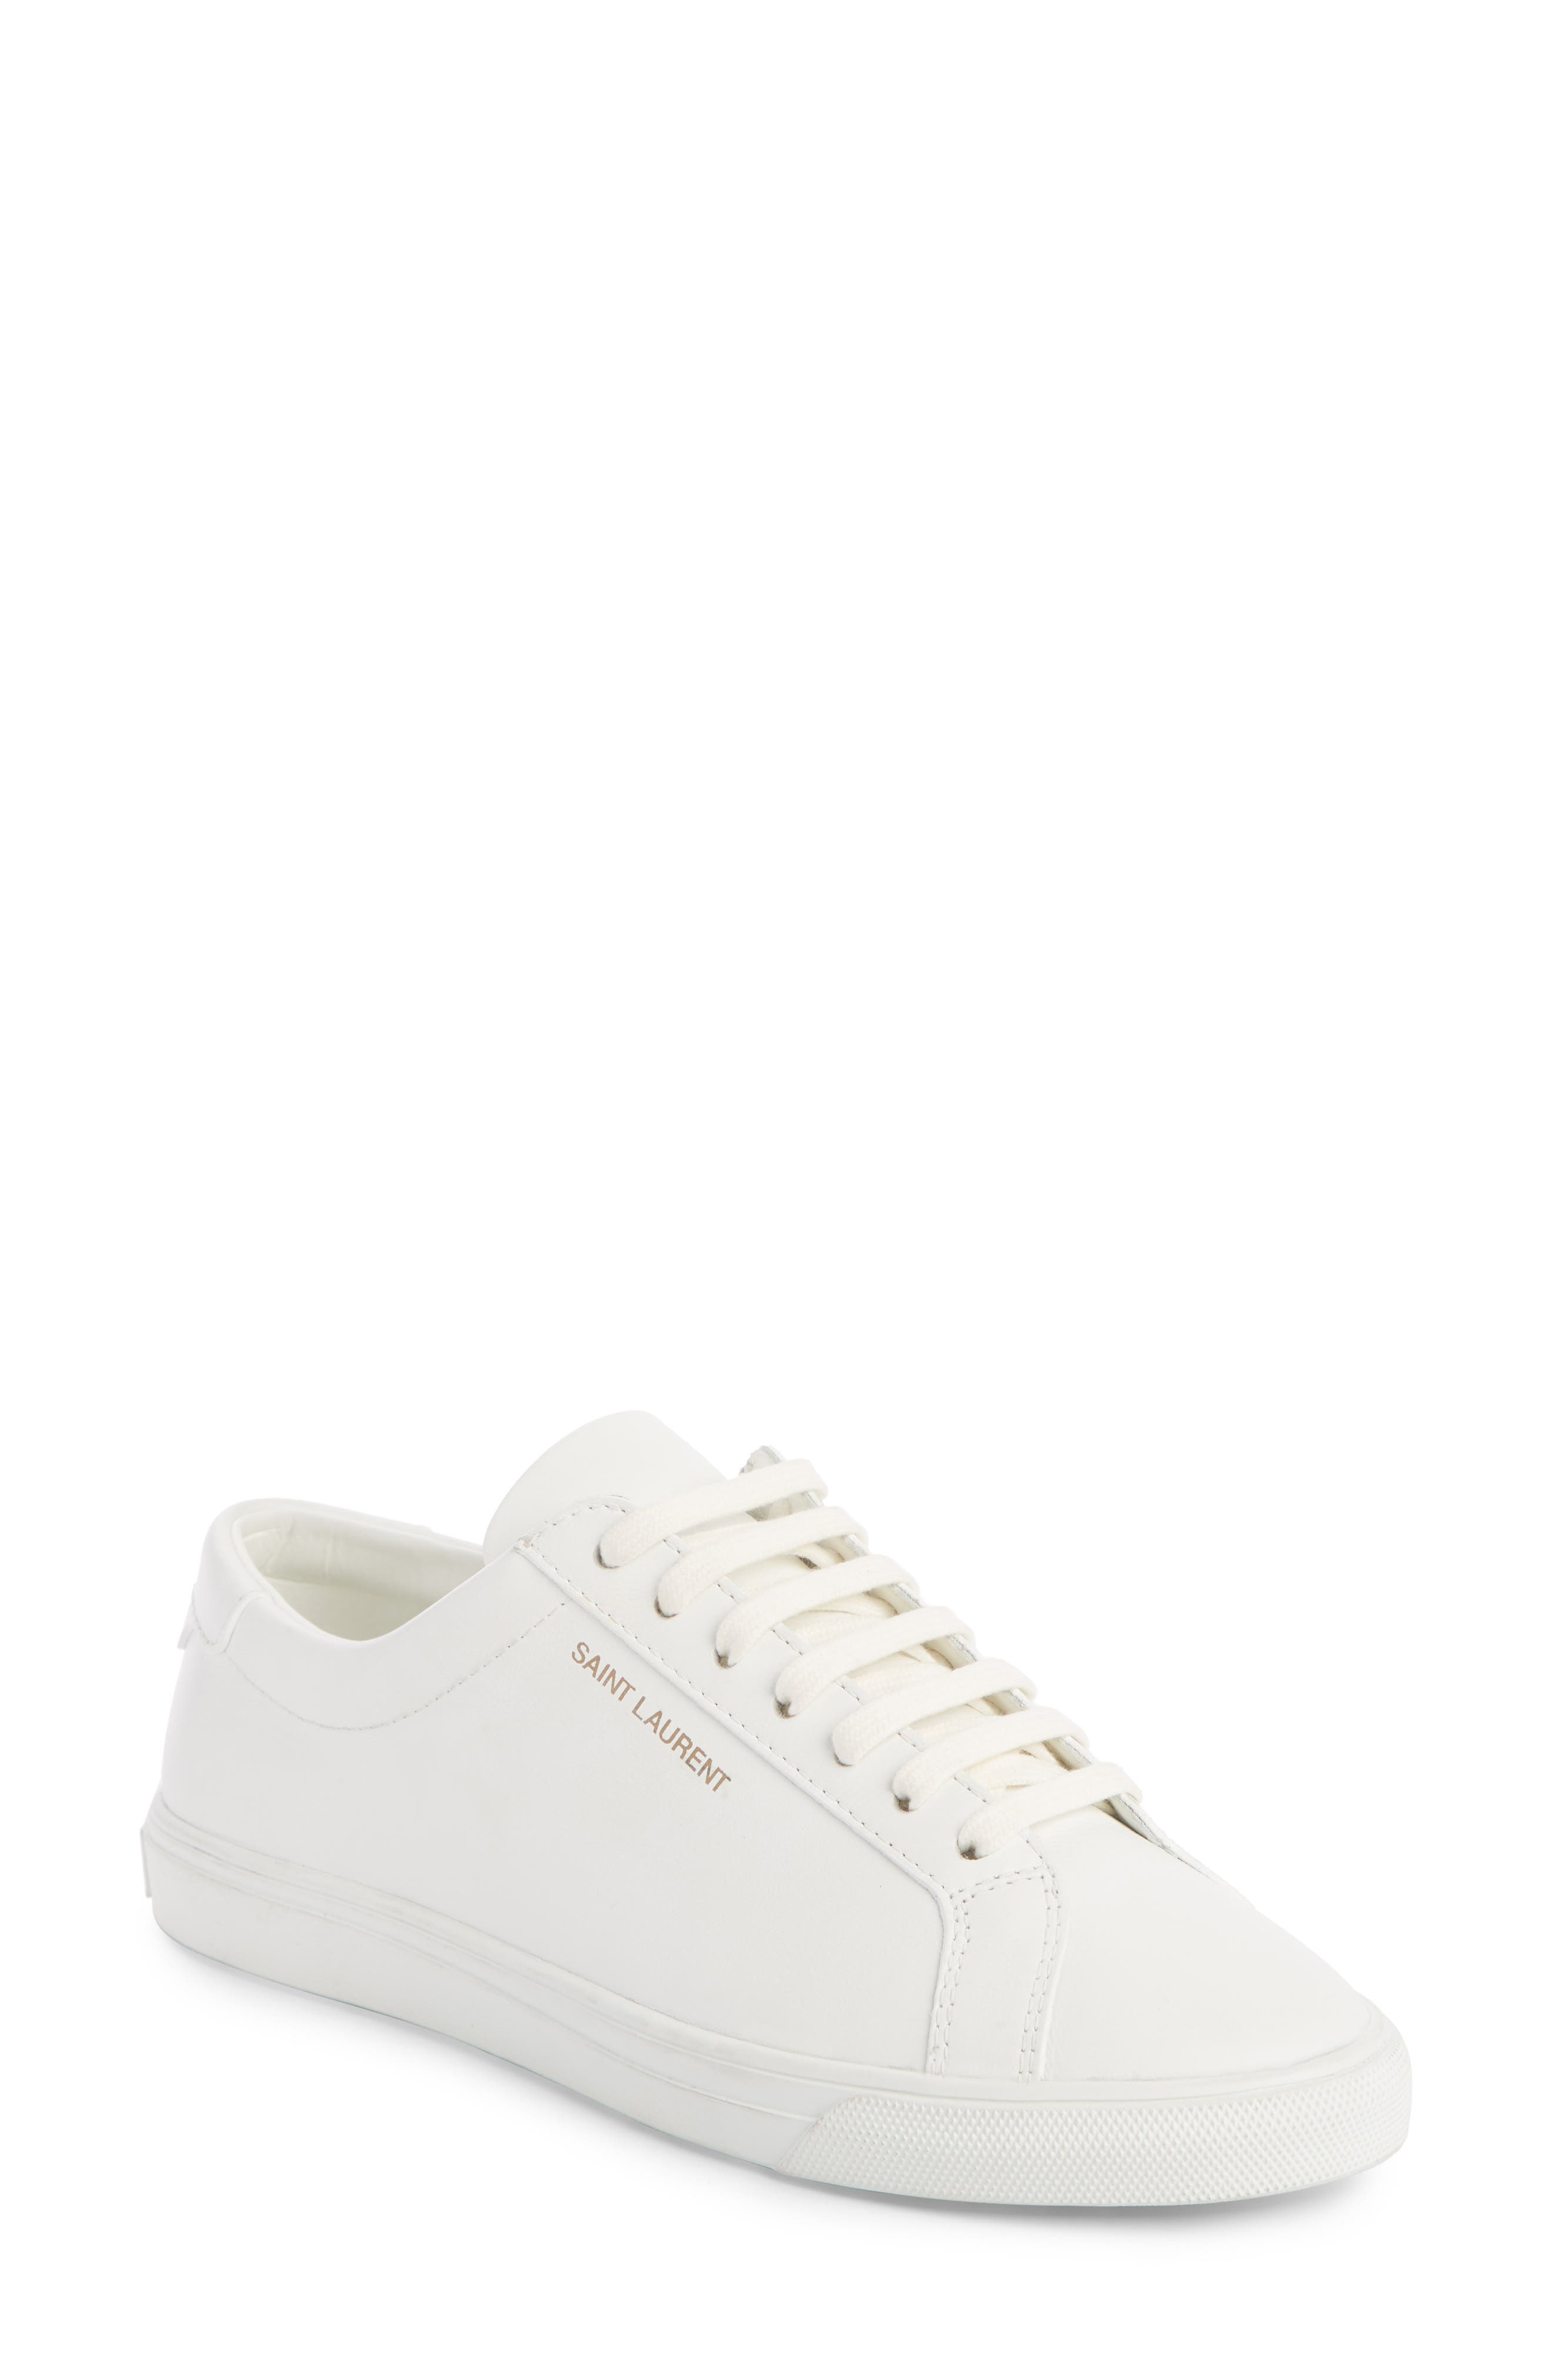 Saint Laurent Andy Sneaker - White